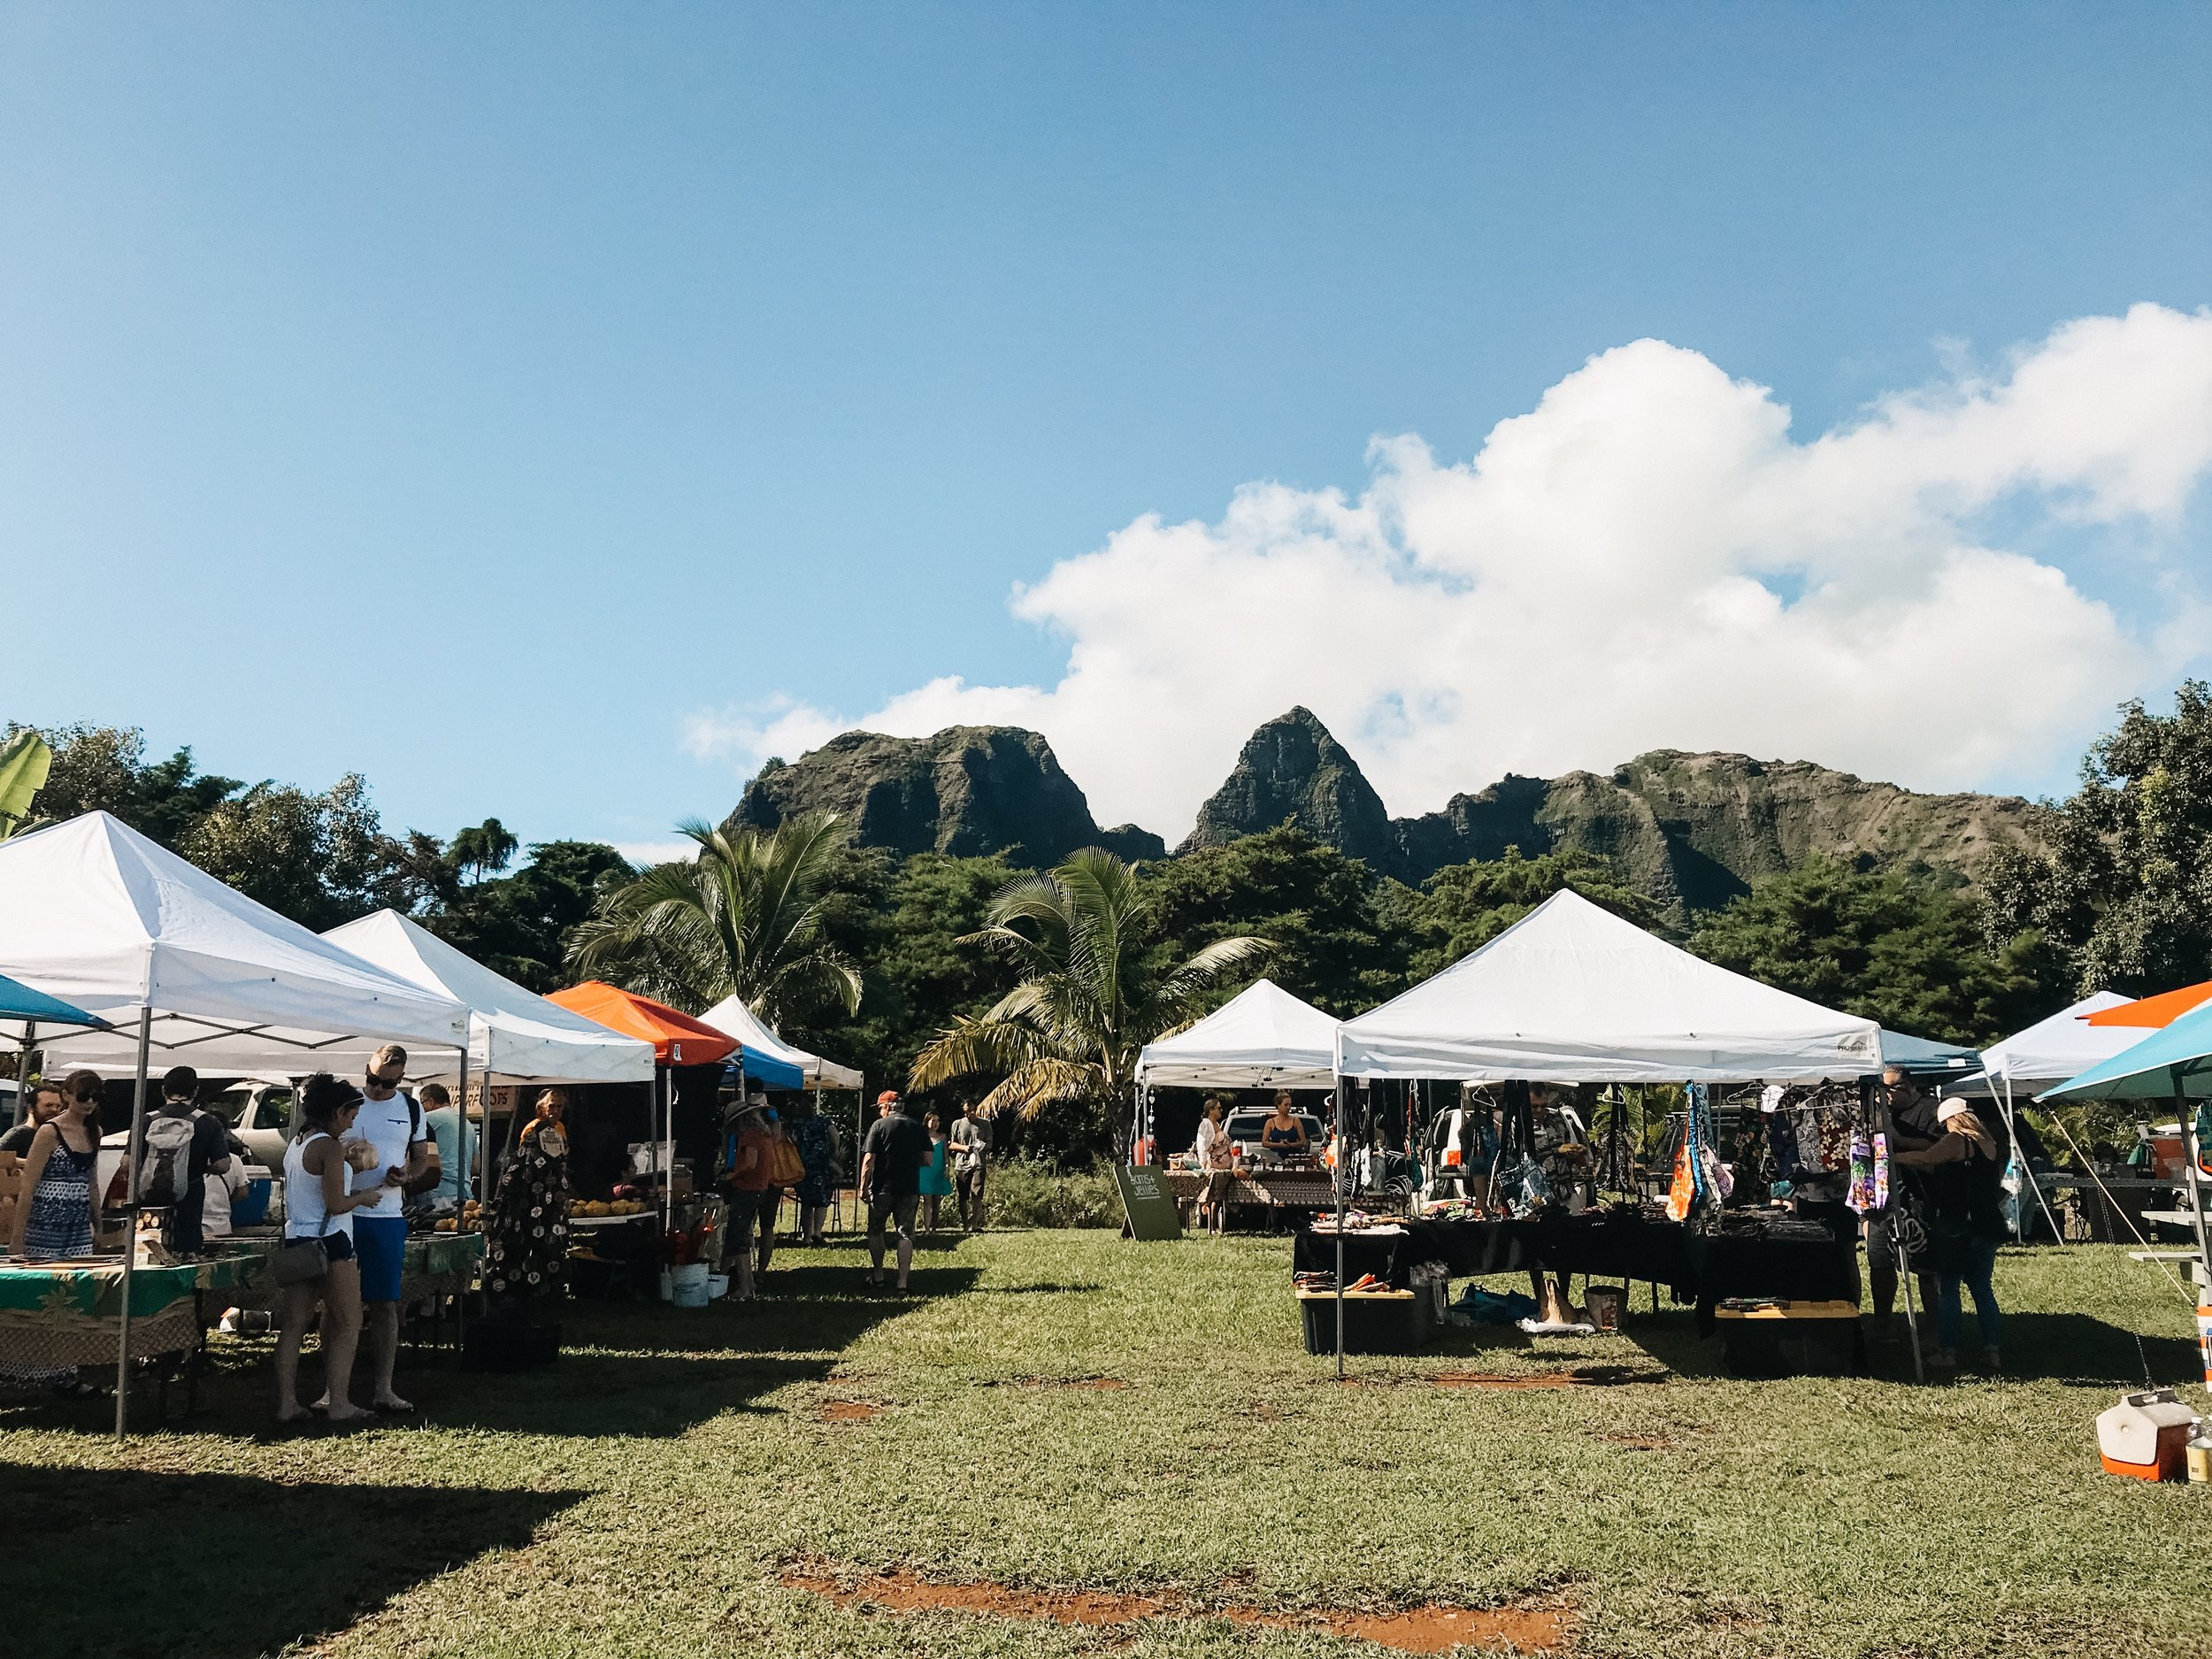 Sunday morning was spent supporting the locals, wandering around the Kalalea ANAHOLA Farmer's Market. The views at the market did not disappoint.